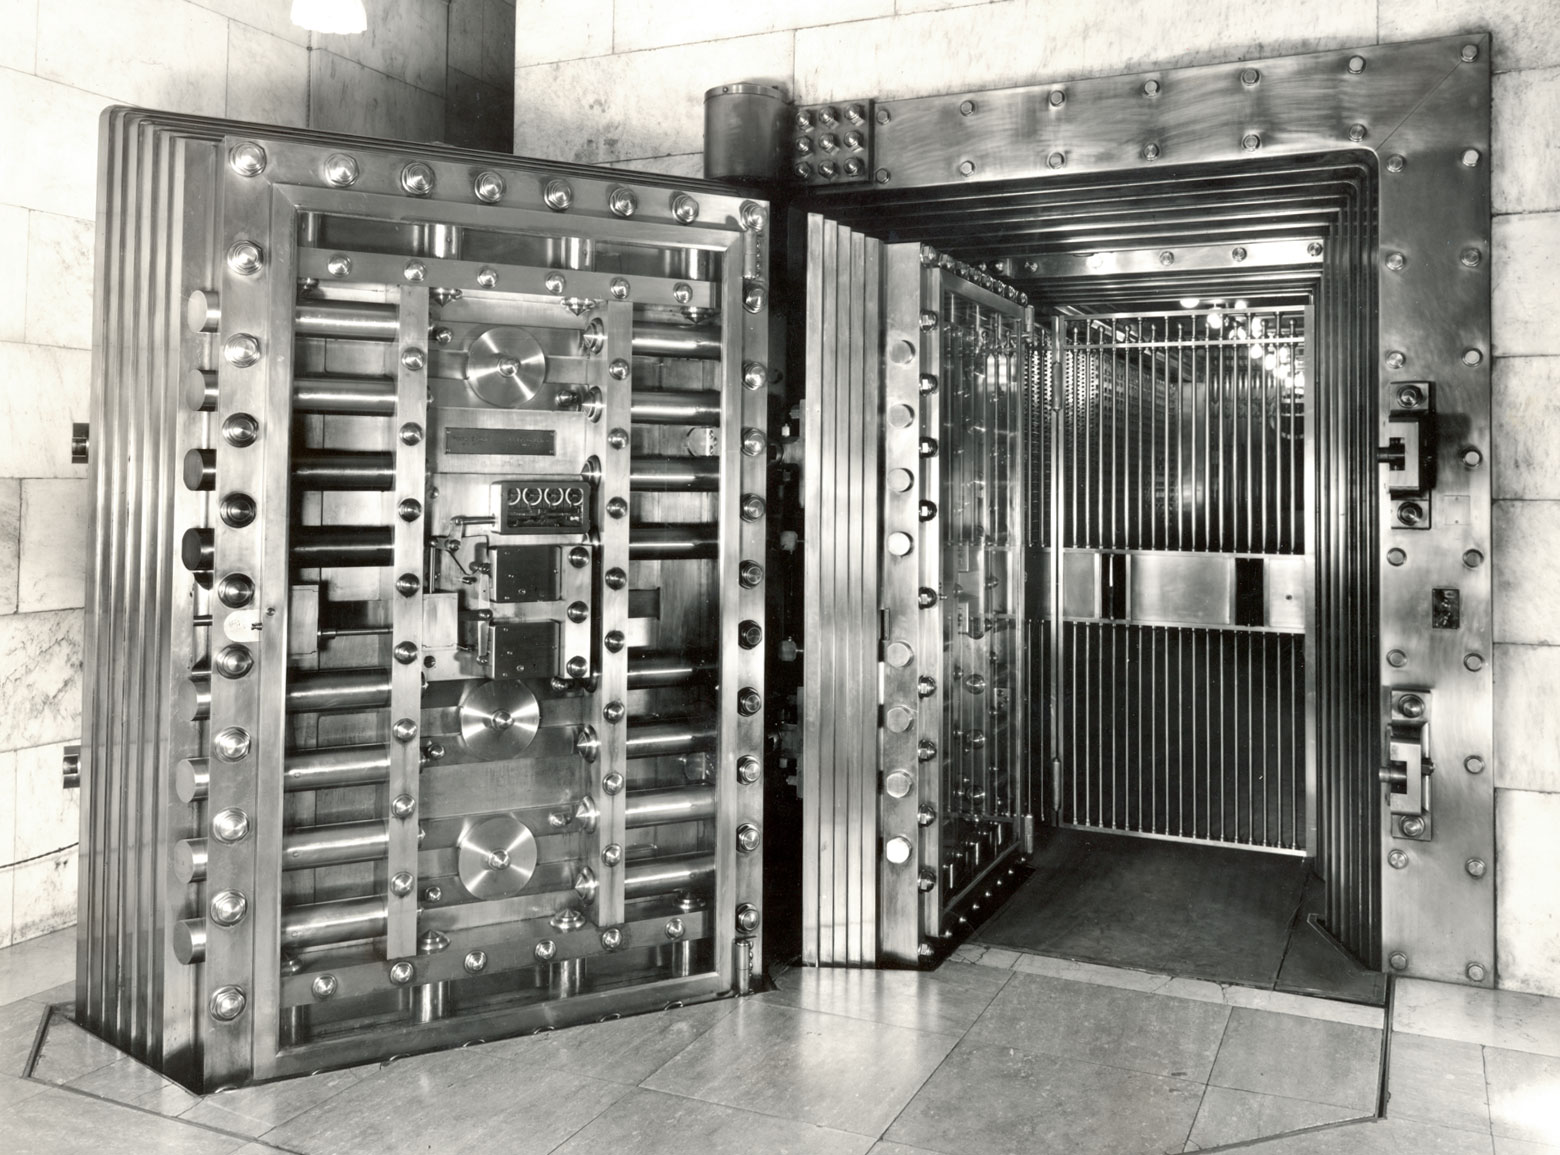 Winnipeg Main Office vault, circa 1920.